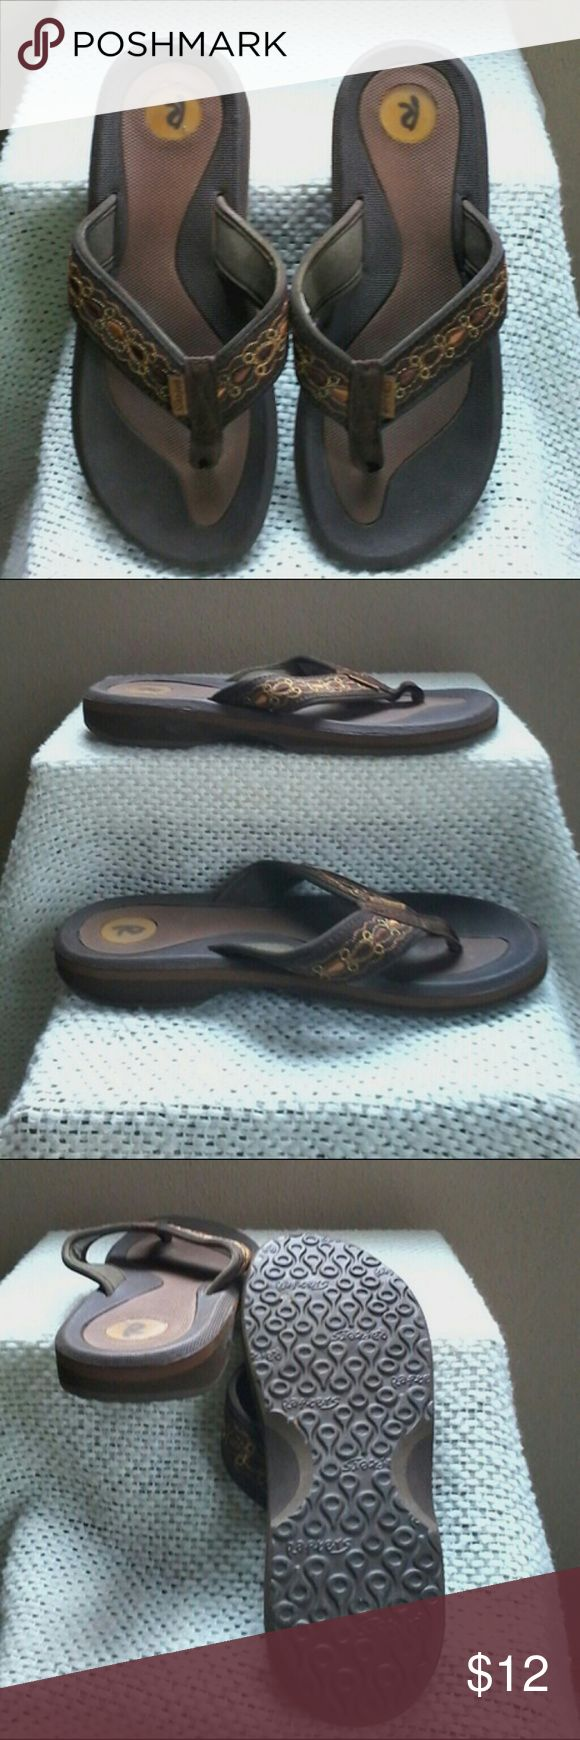 Rafters sandals Excellent condition. Rafters Shoes Sandals